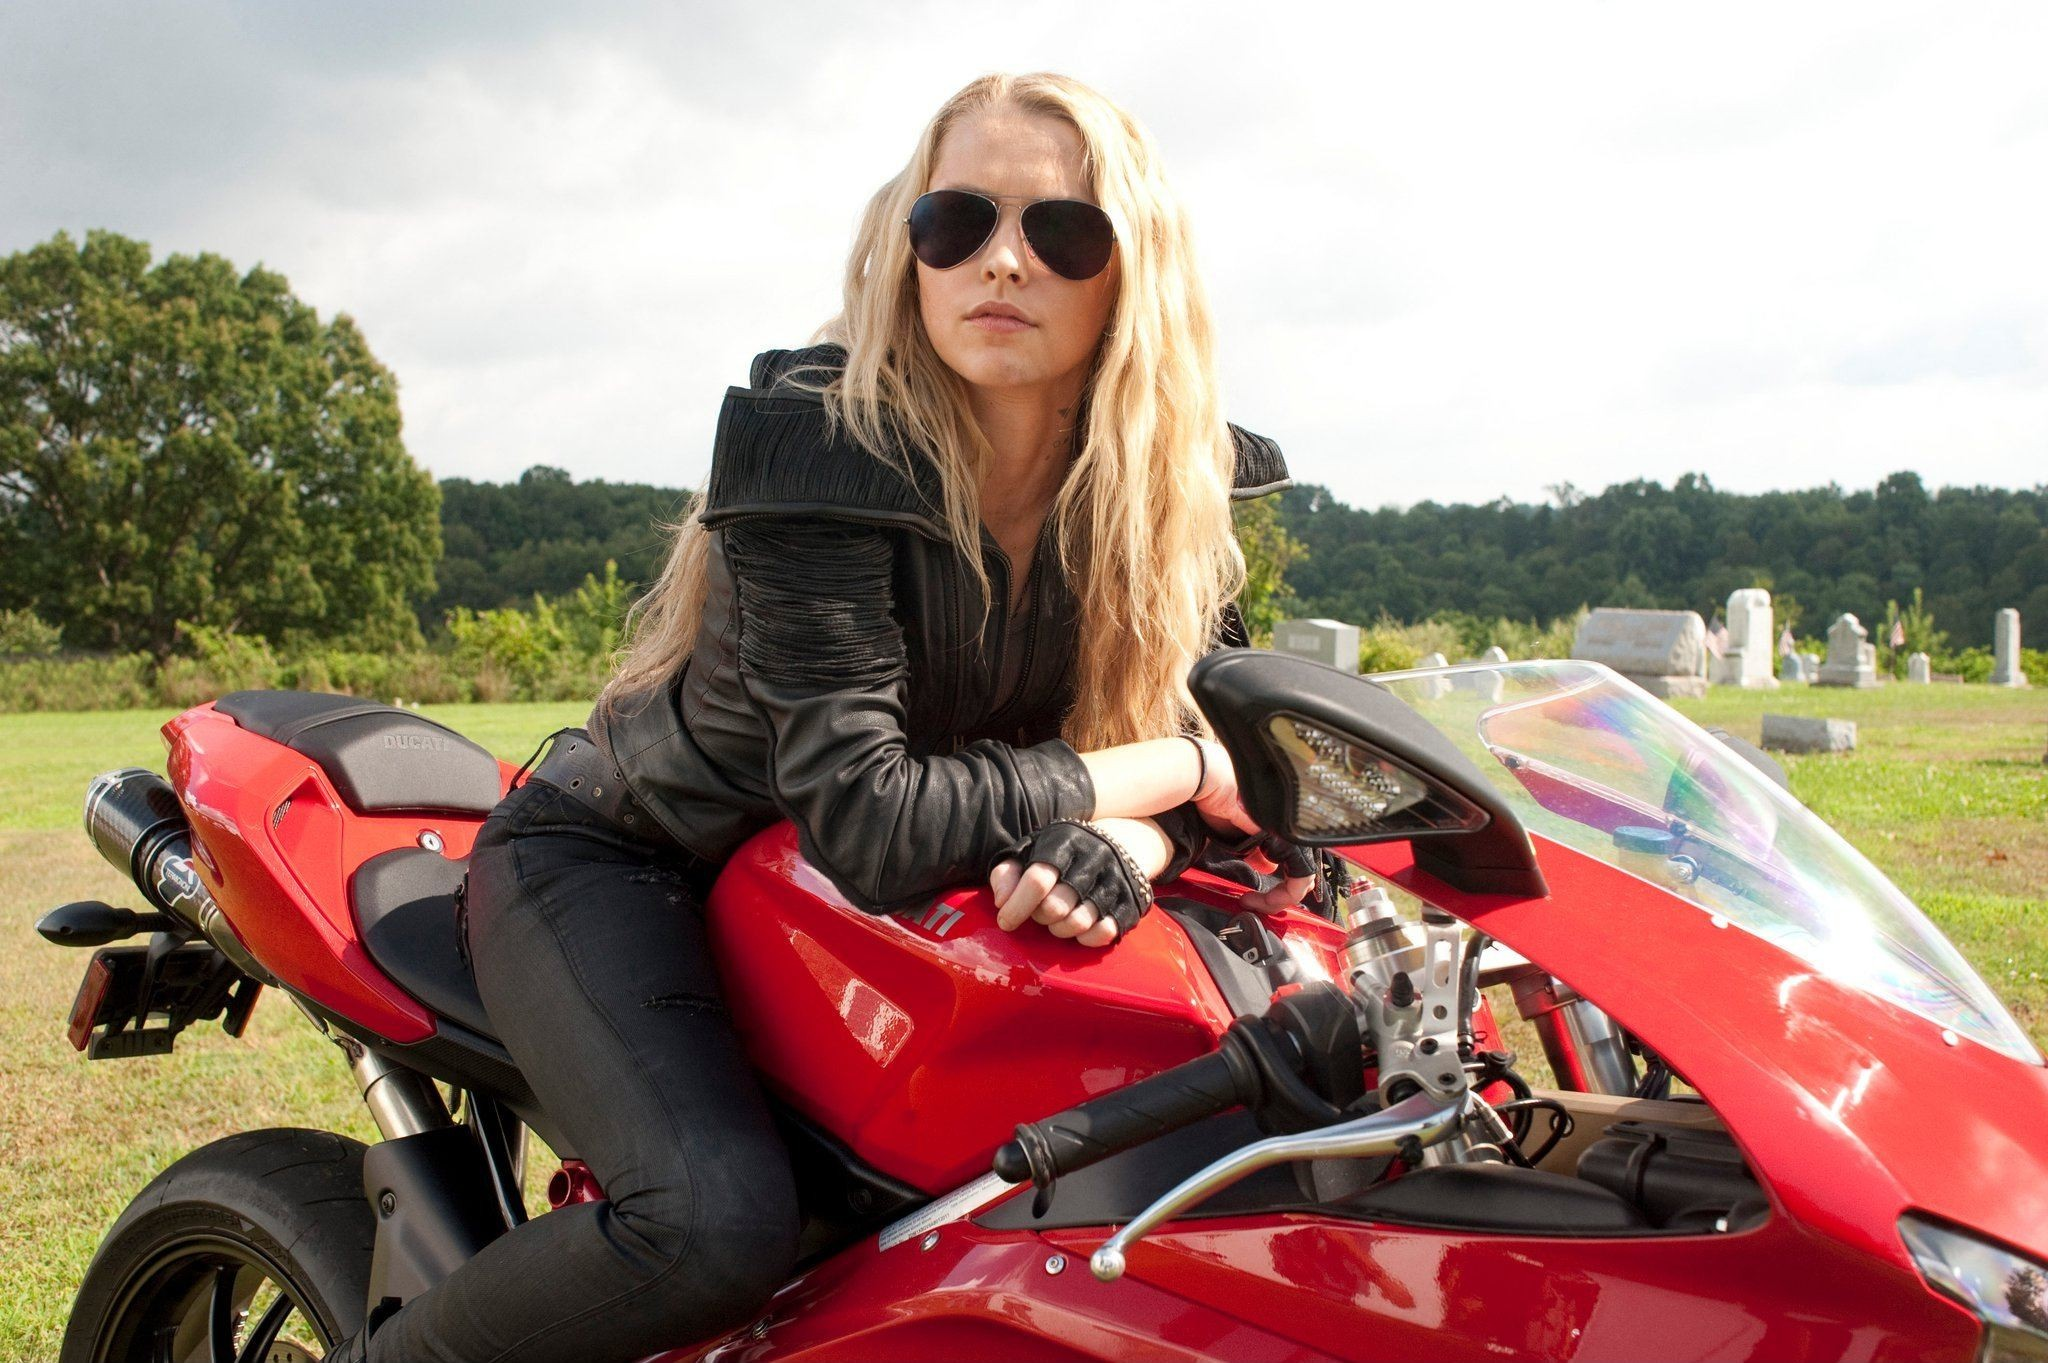 blondes woman Actress sunglasses HD Wallpaper